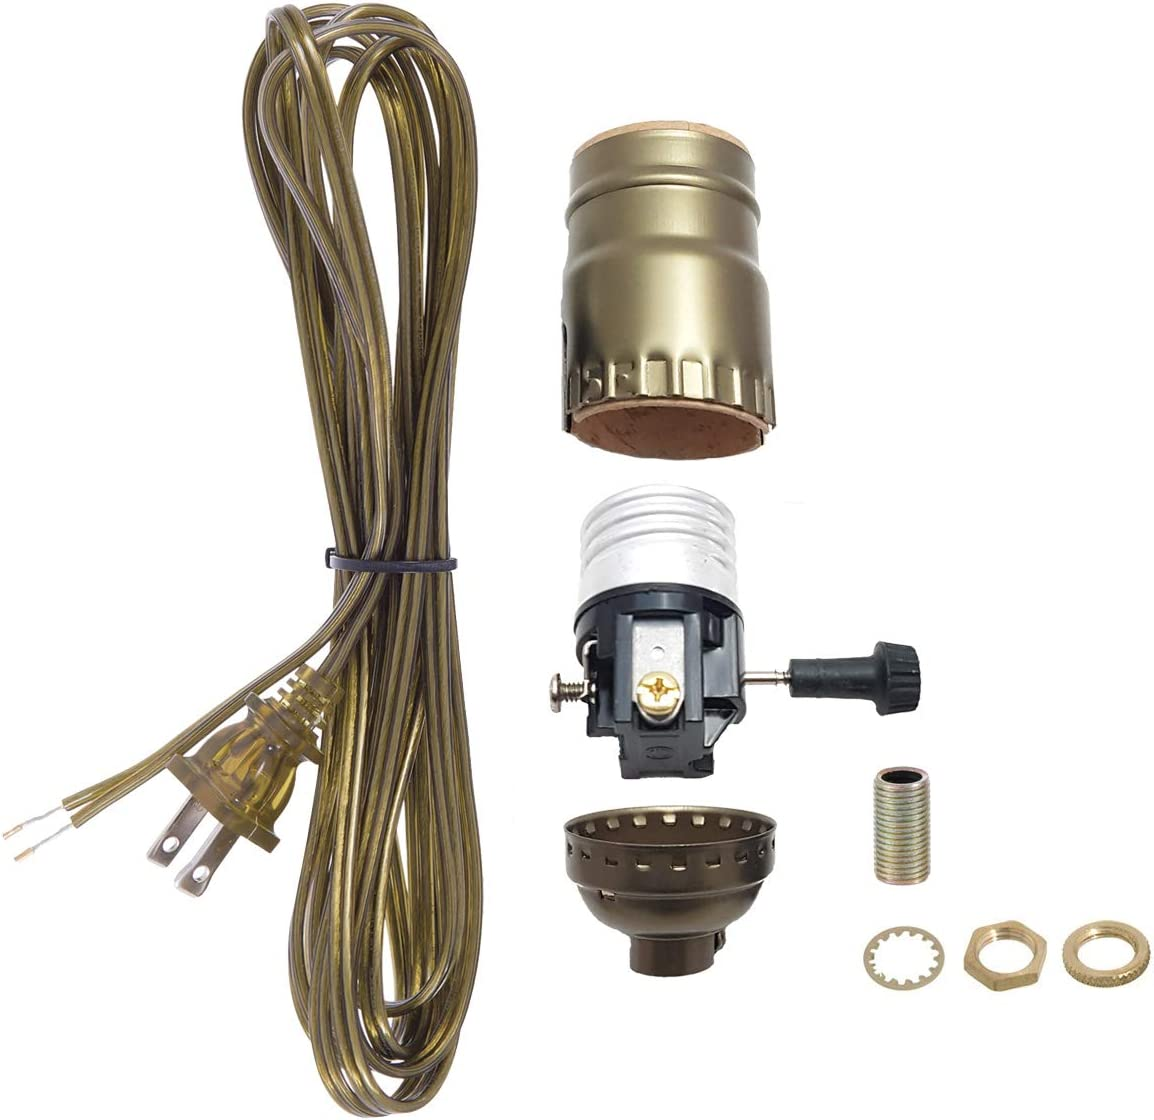 BP Lamp Antique Brass Socket with Matching Cord Limited Special Price Set Basic In a popularity and H